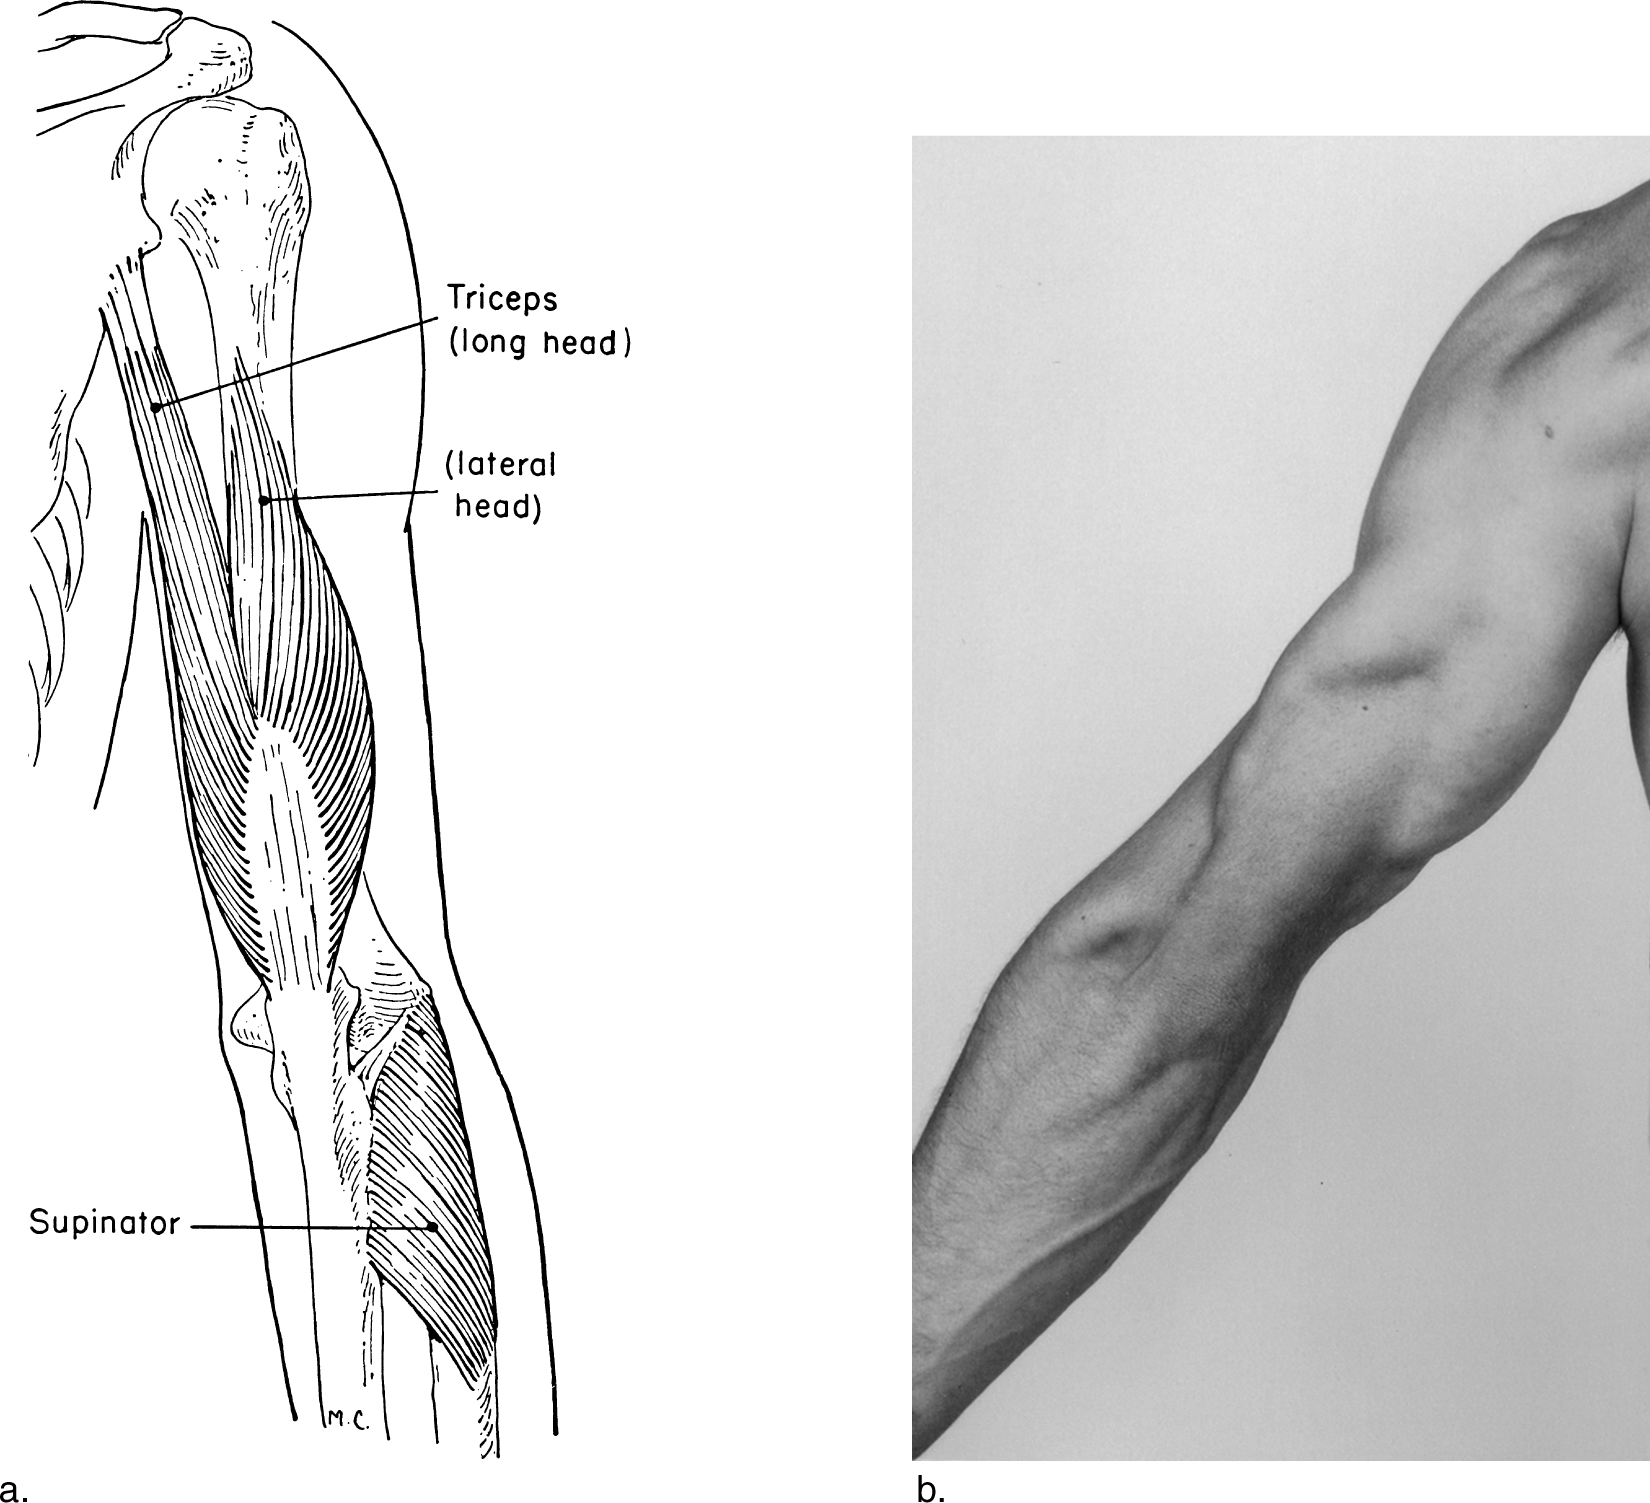 graphic royalty free download The Upper Extremity